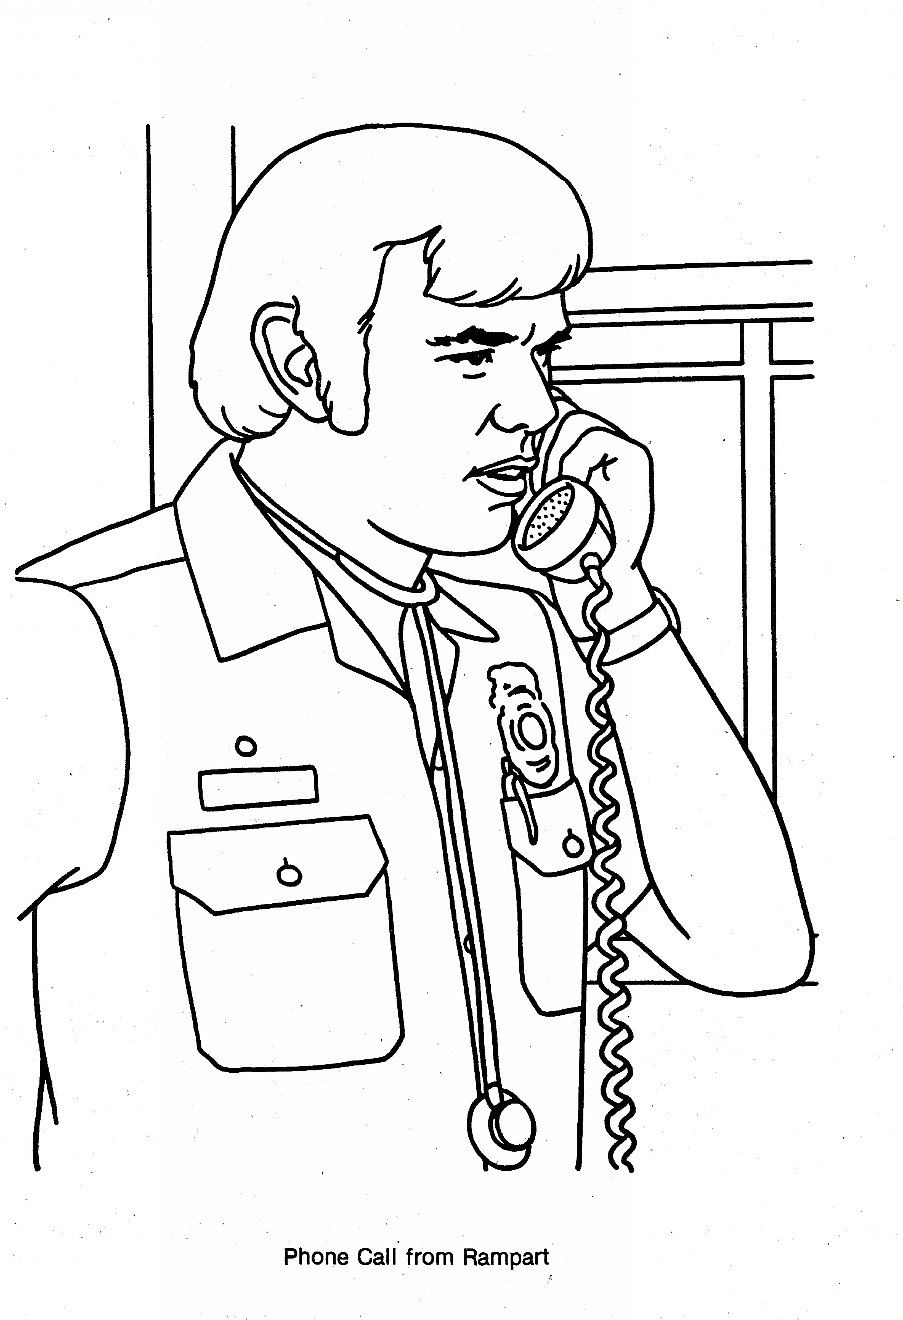 Malvorlagen Tv: Emergency TV Show Coloring Pages